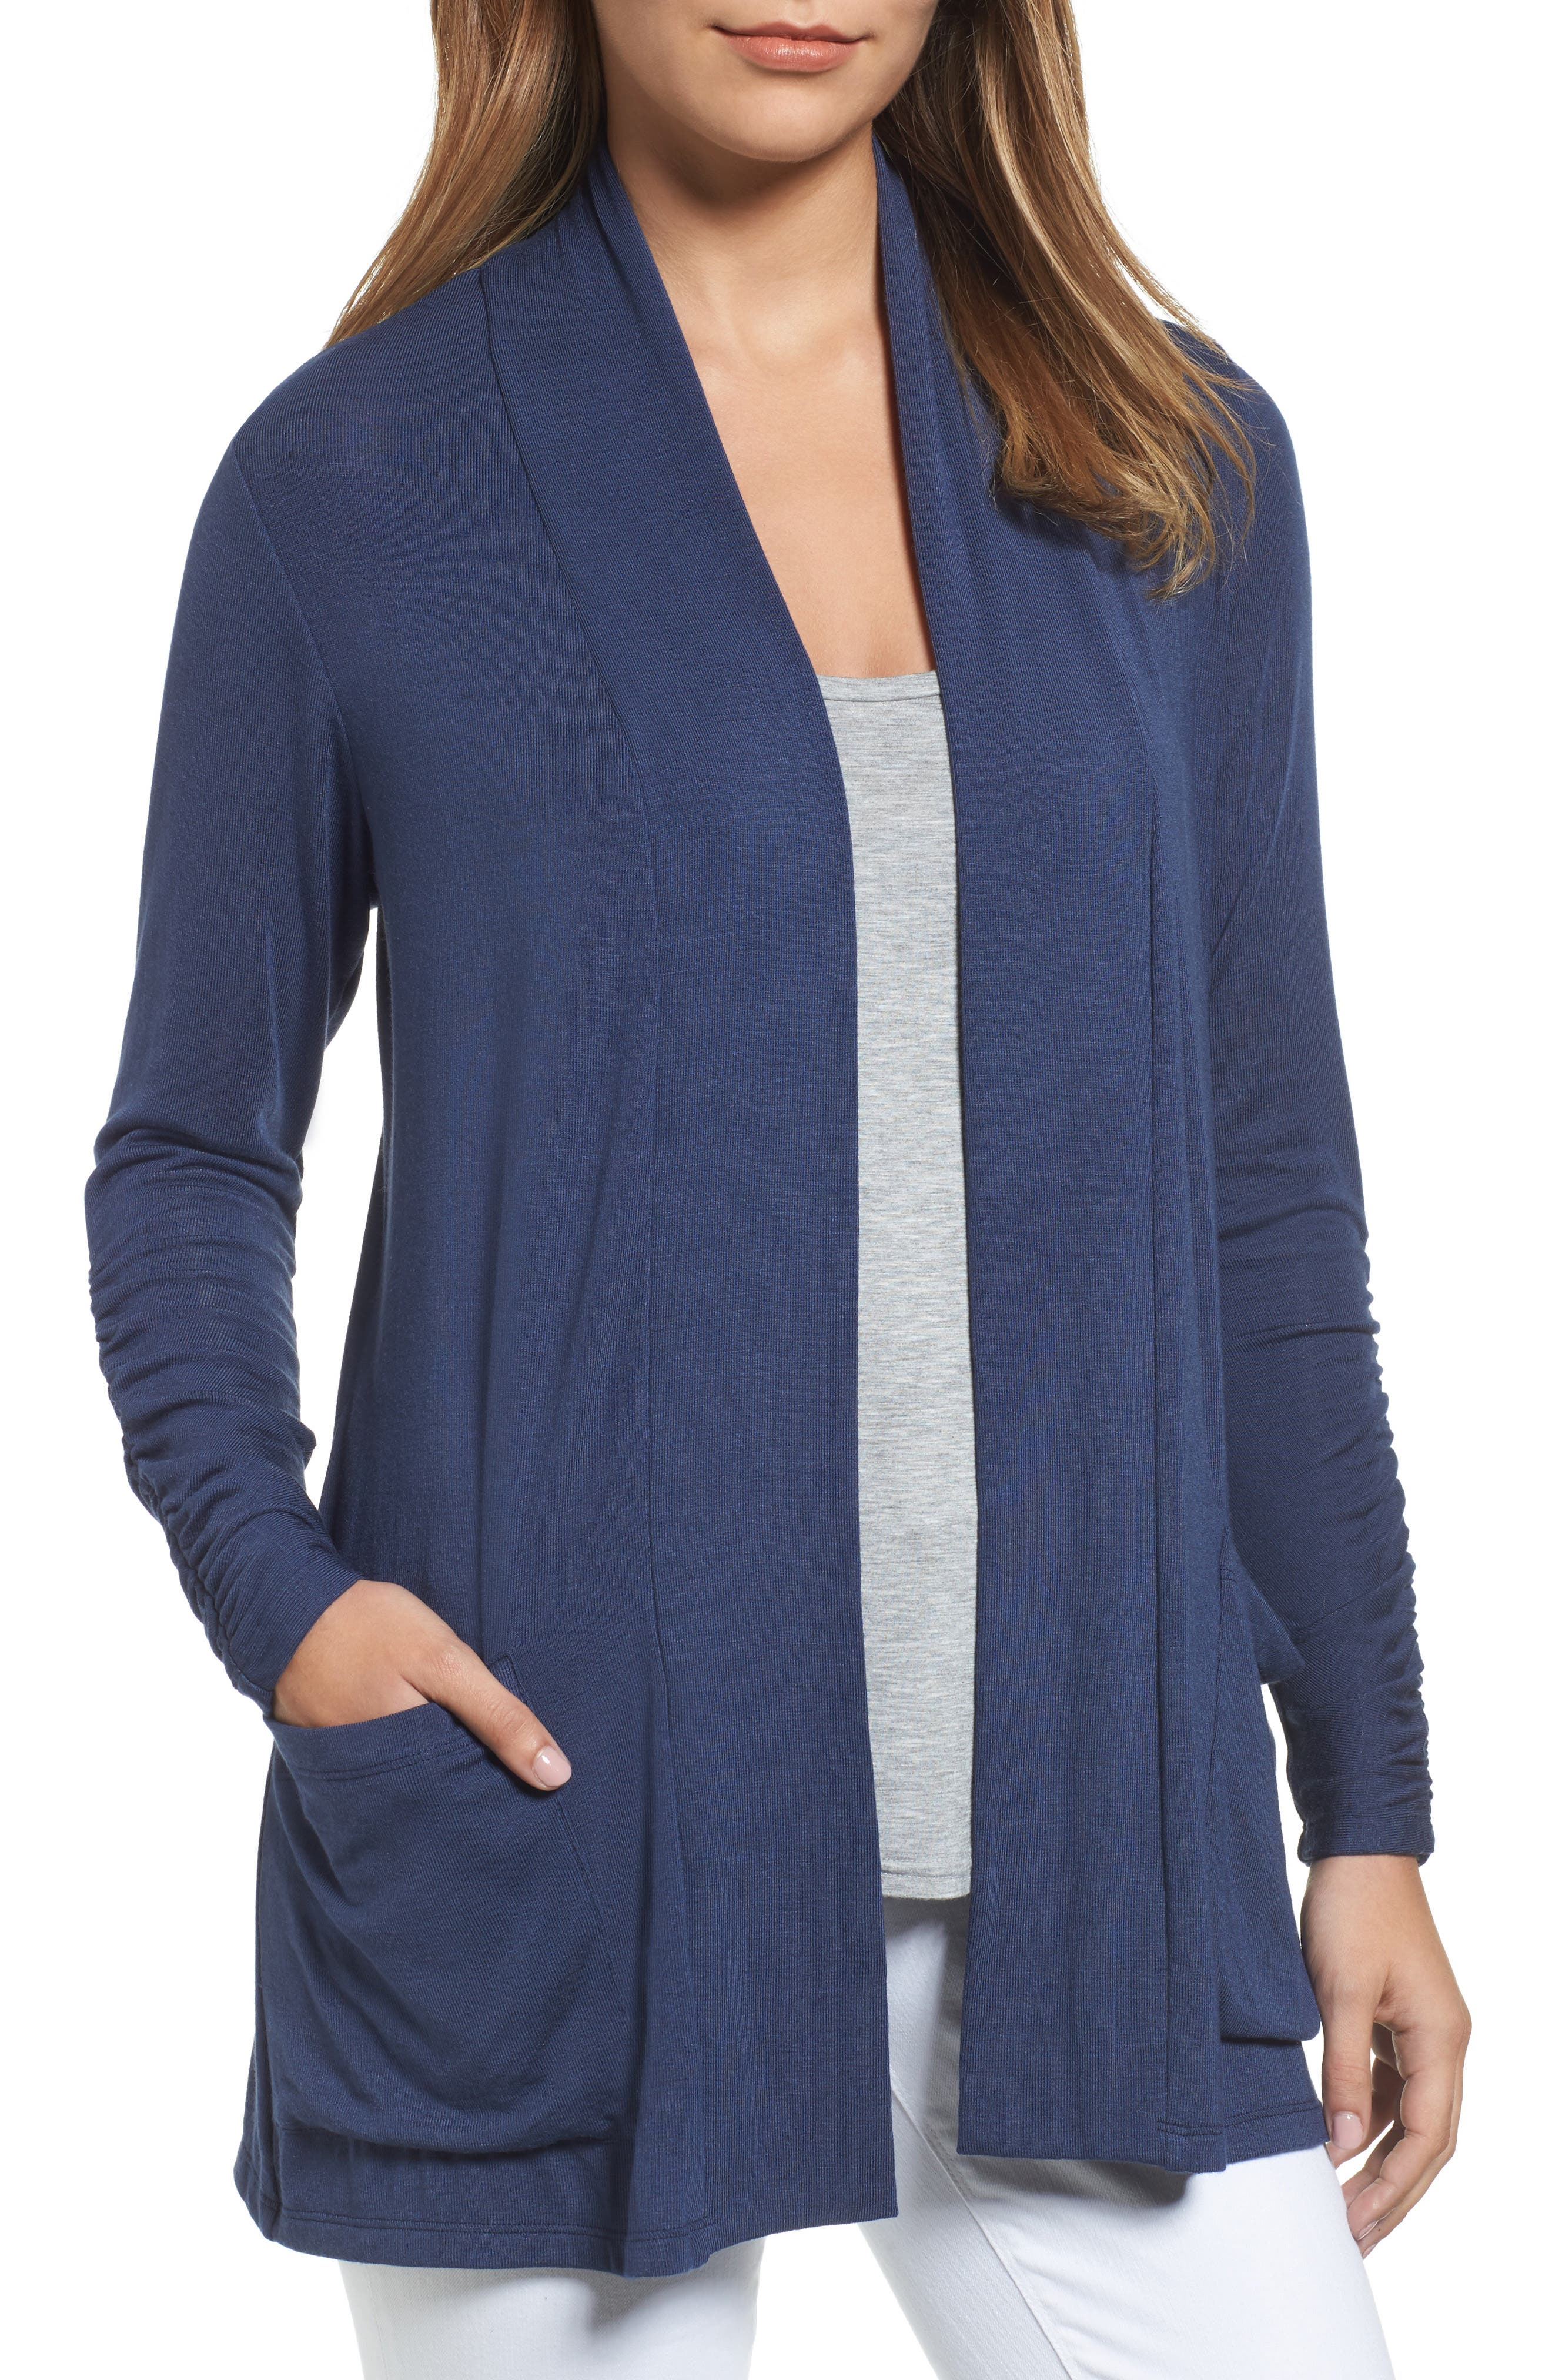 Ruched Sleeve Cardigan,                             Main thumbnail 1, color,                             NAVY